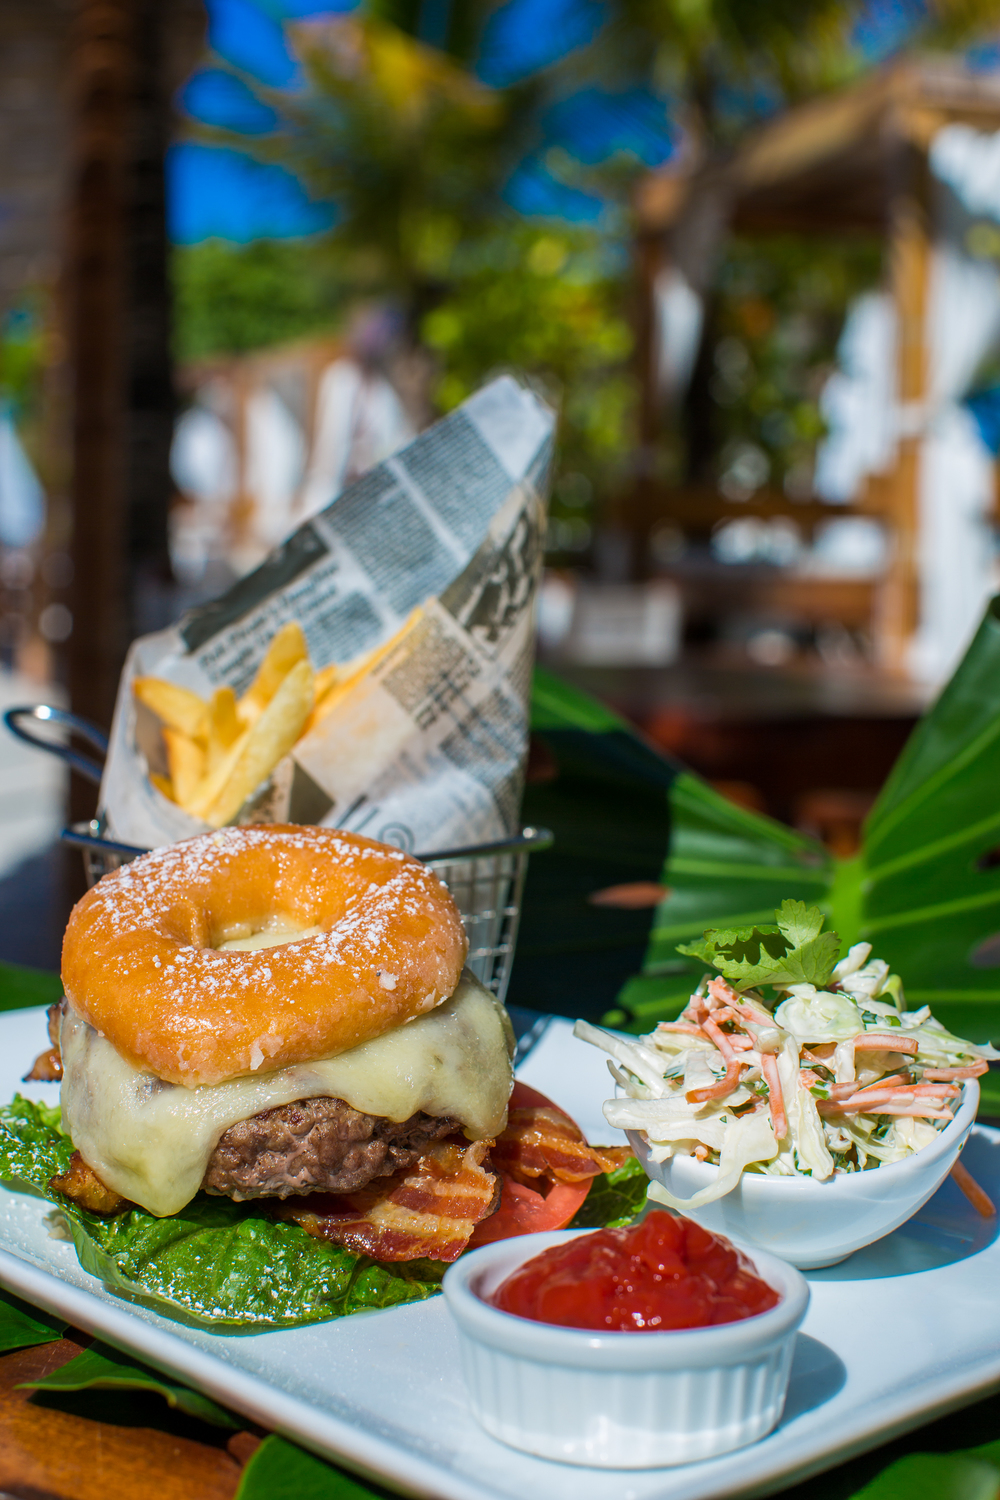 Nikki Beach 'MEEERRRICA Burger Photo credit: Alexey Olivenko